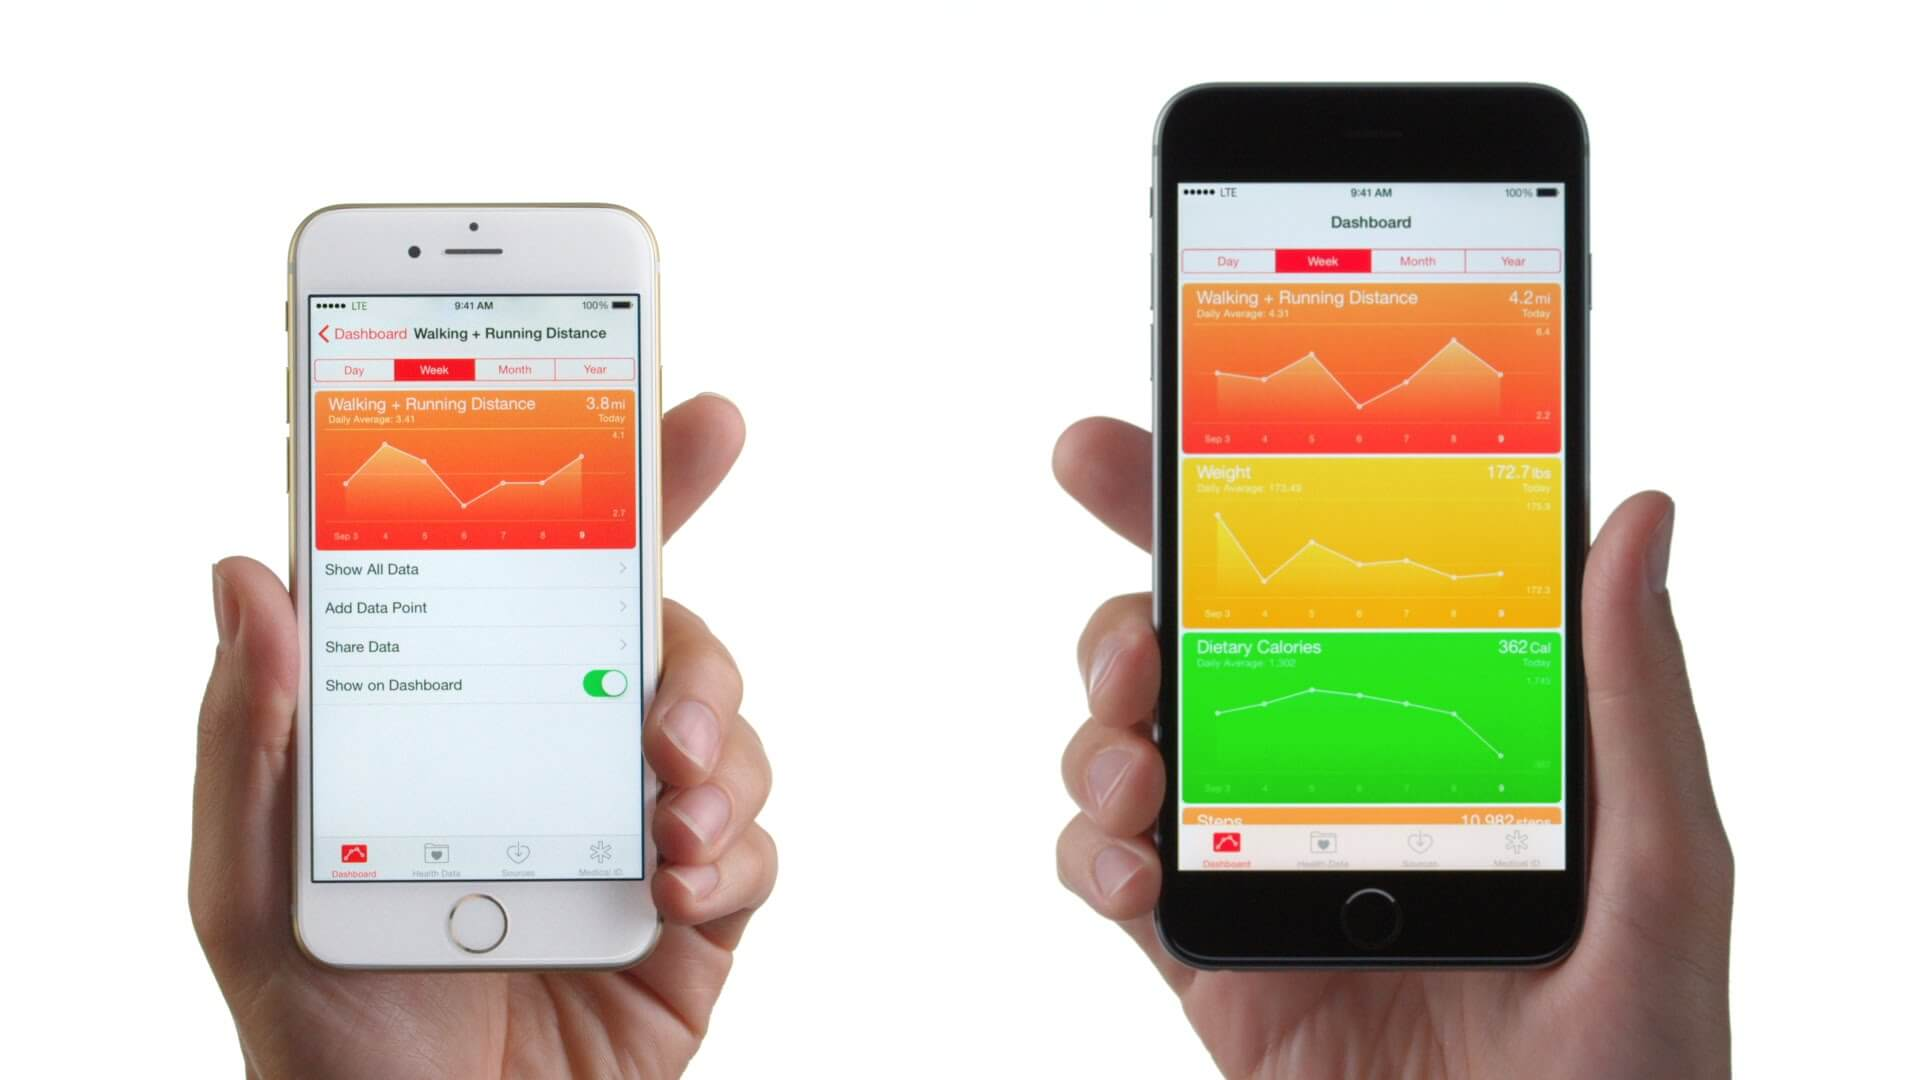 iPhone 6 Vs iPhone 5 … in health care